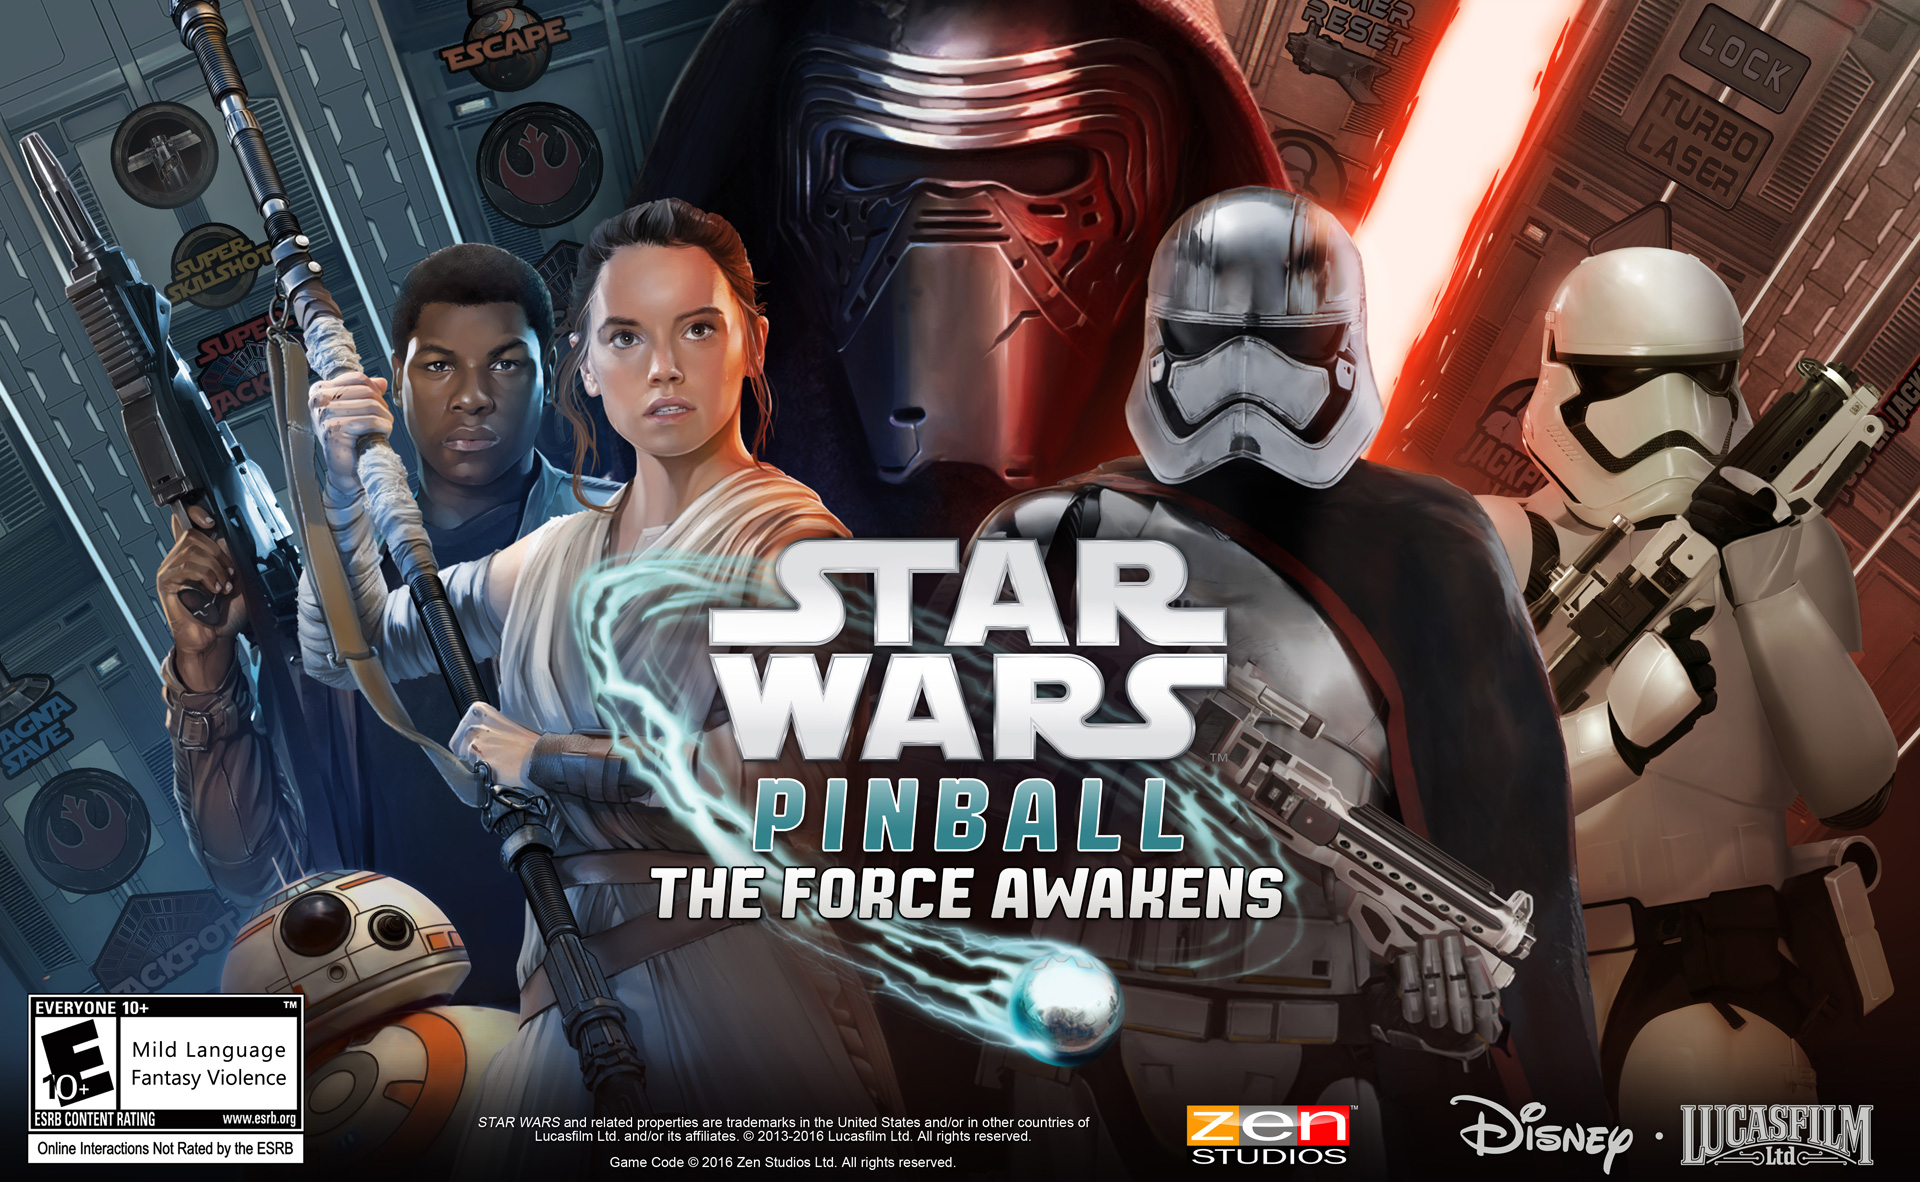 Star Wars: The Force Awakens Pinball Pack Coming Soon